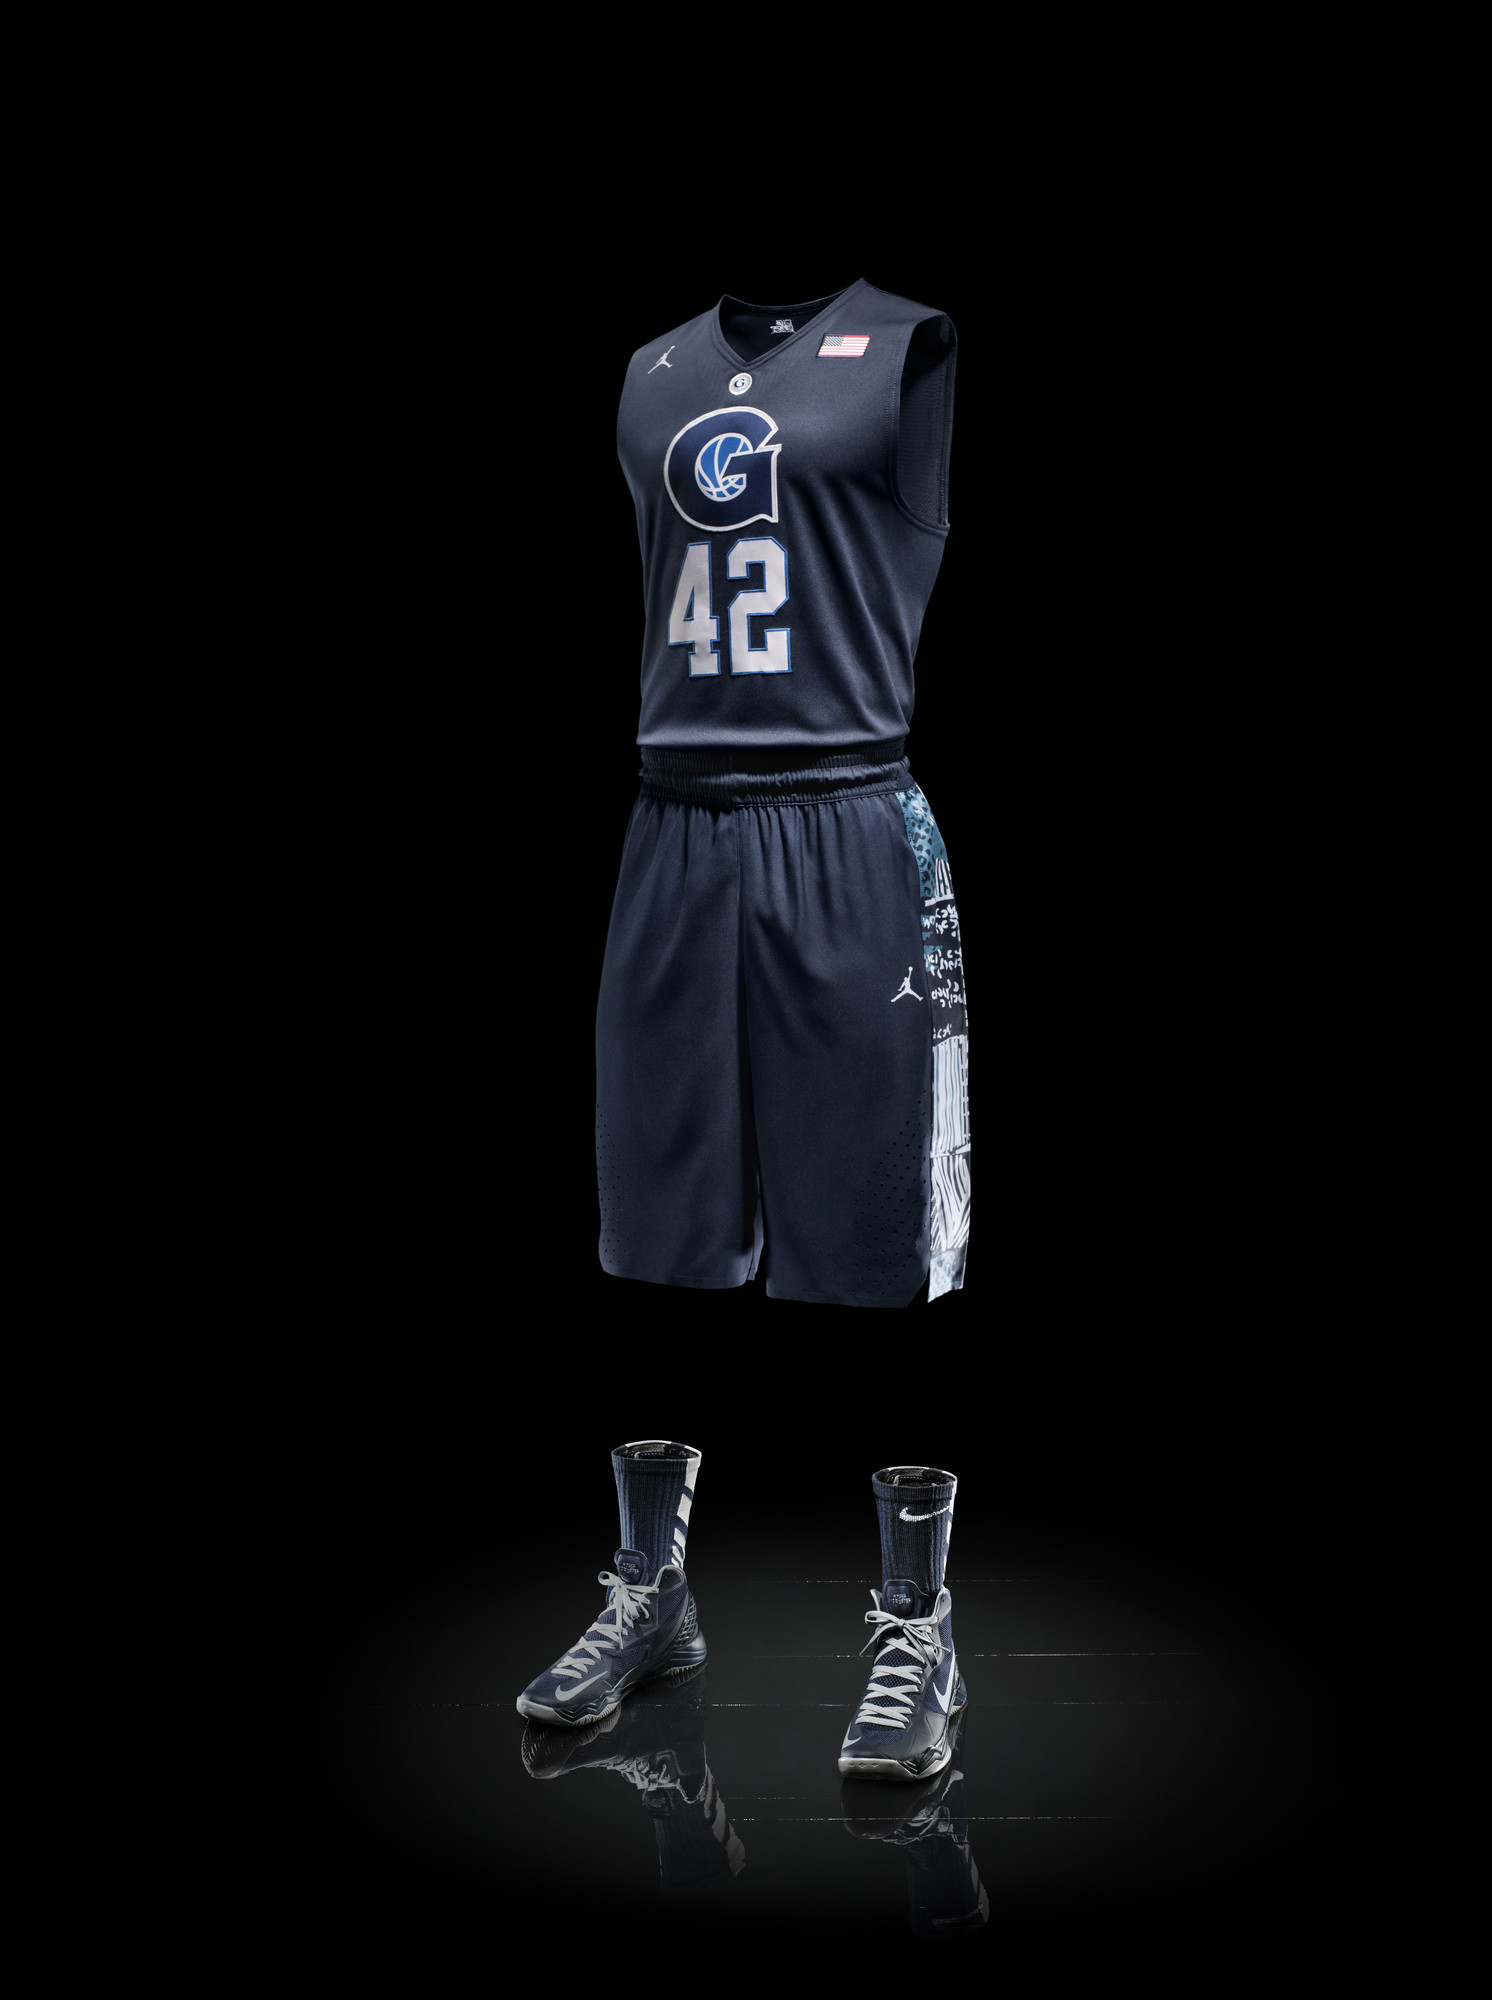 nike elite basketball jersey - Santillana ...